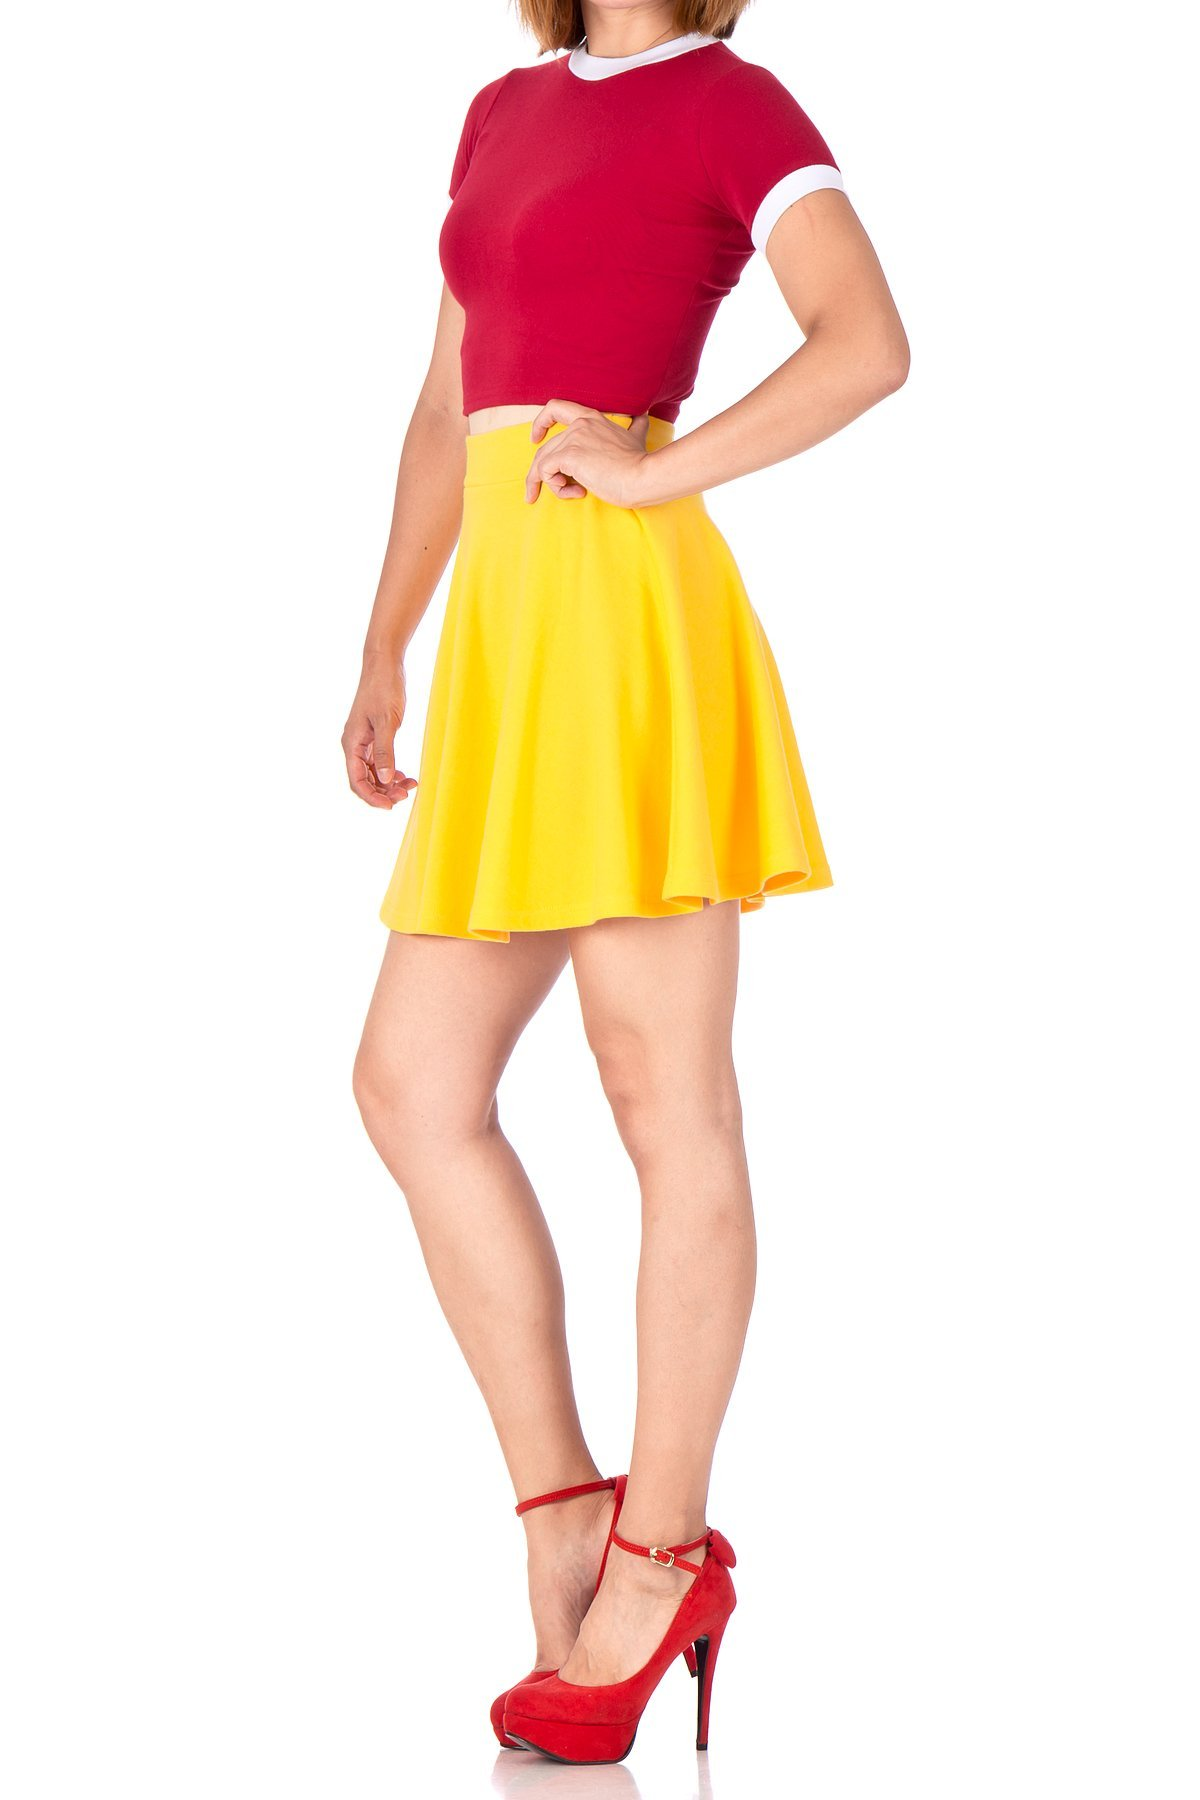 Basic Solid Stretchy Cotton High Waist A line Flared Skater Mini Skirt Yellow 04 1